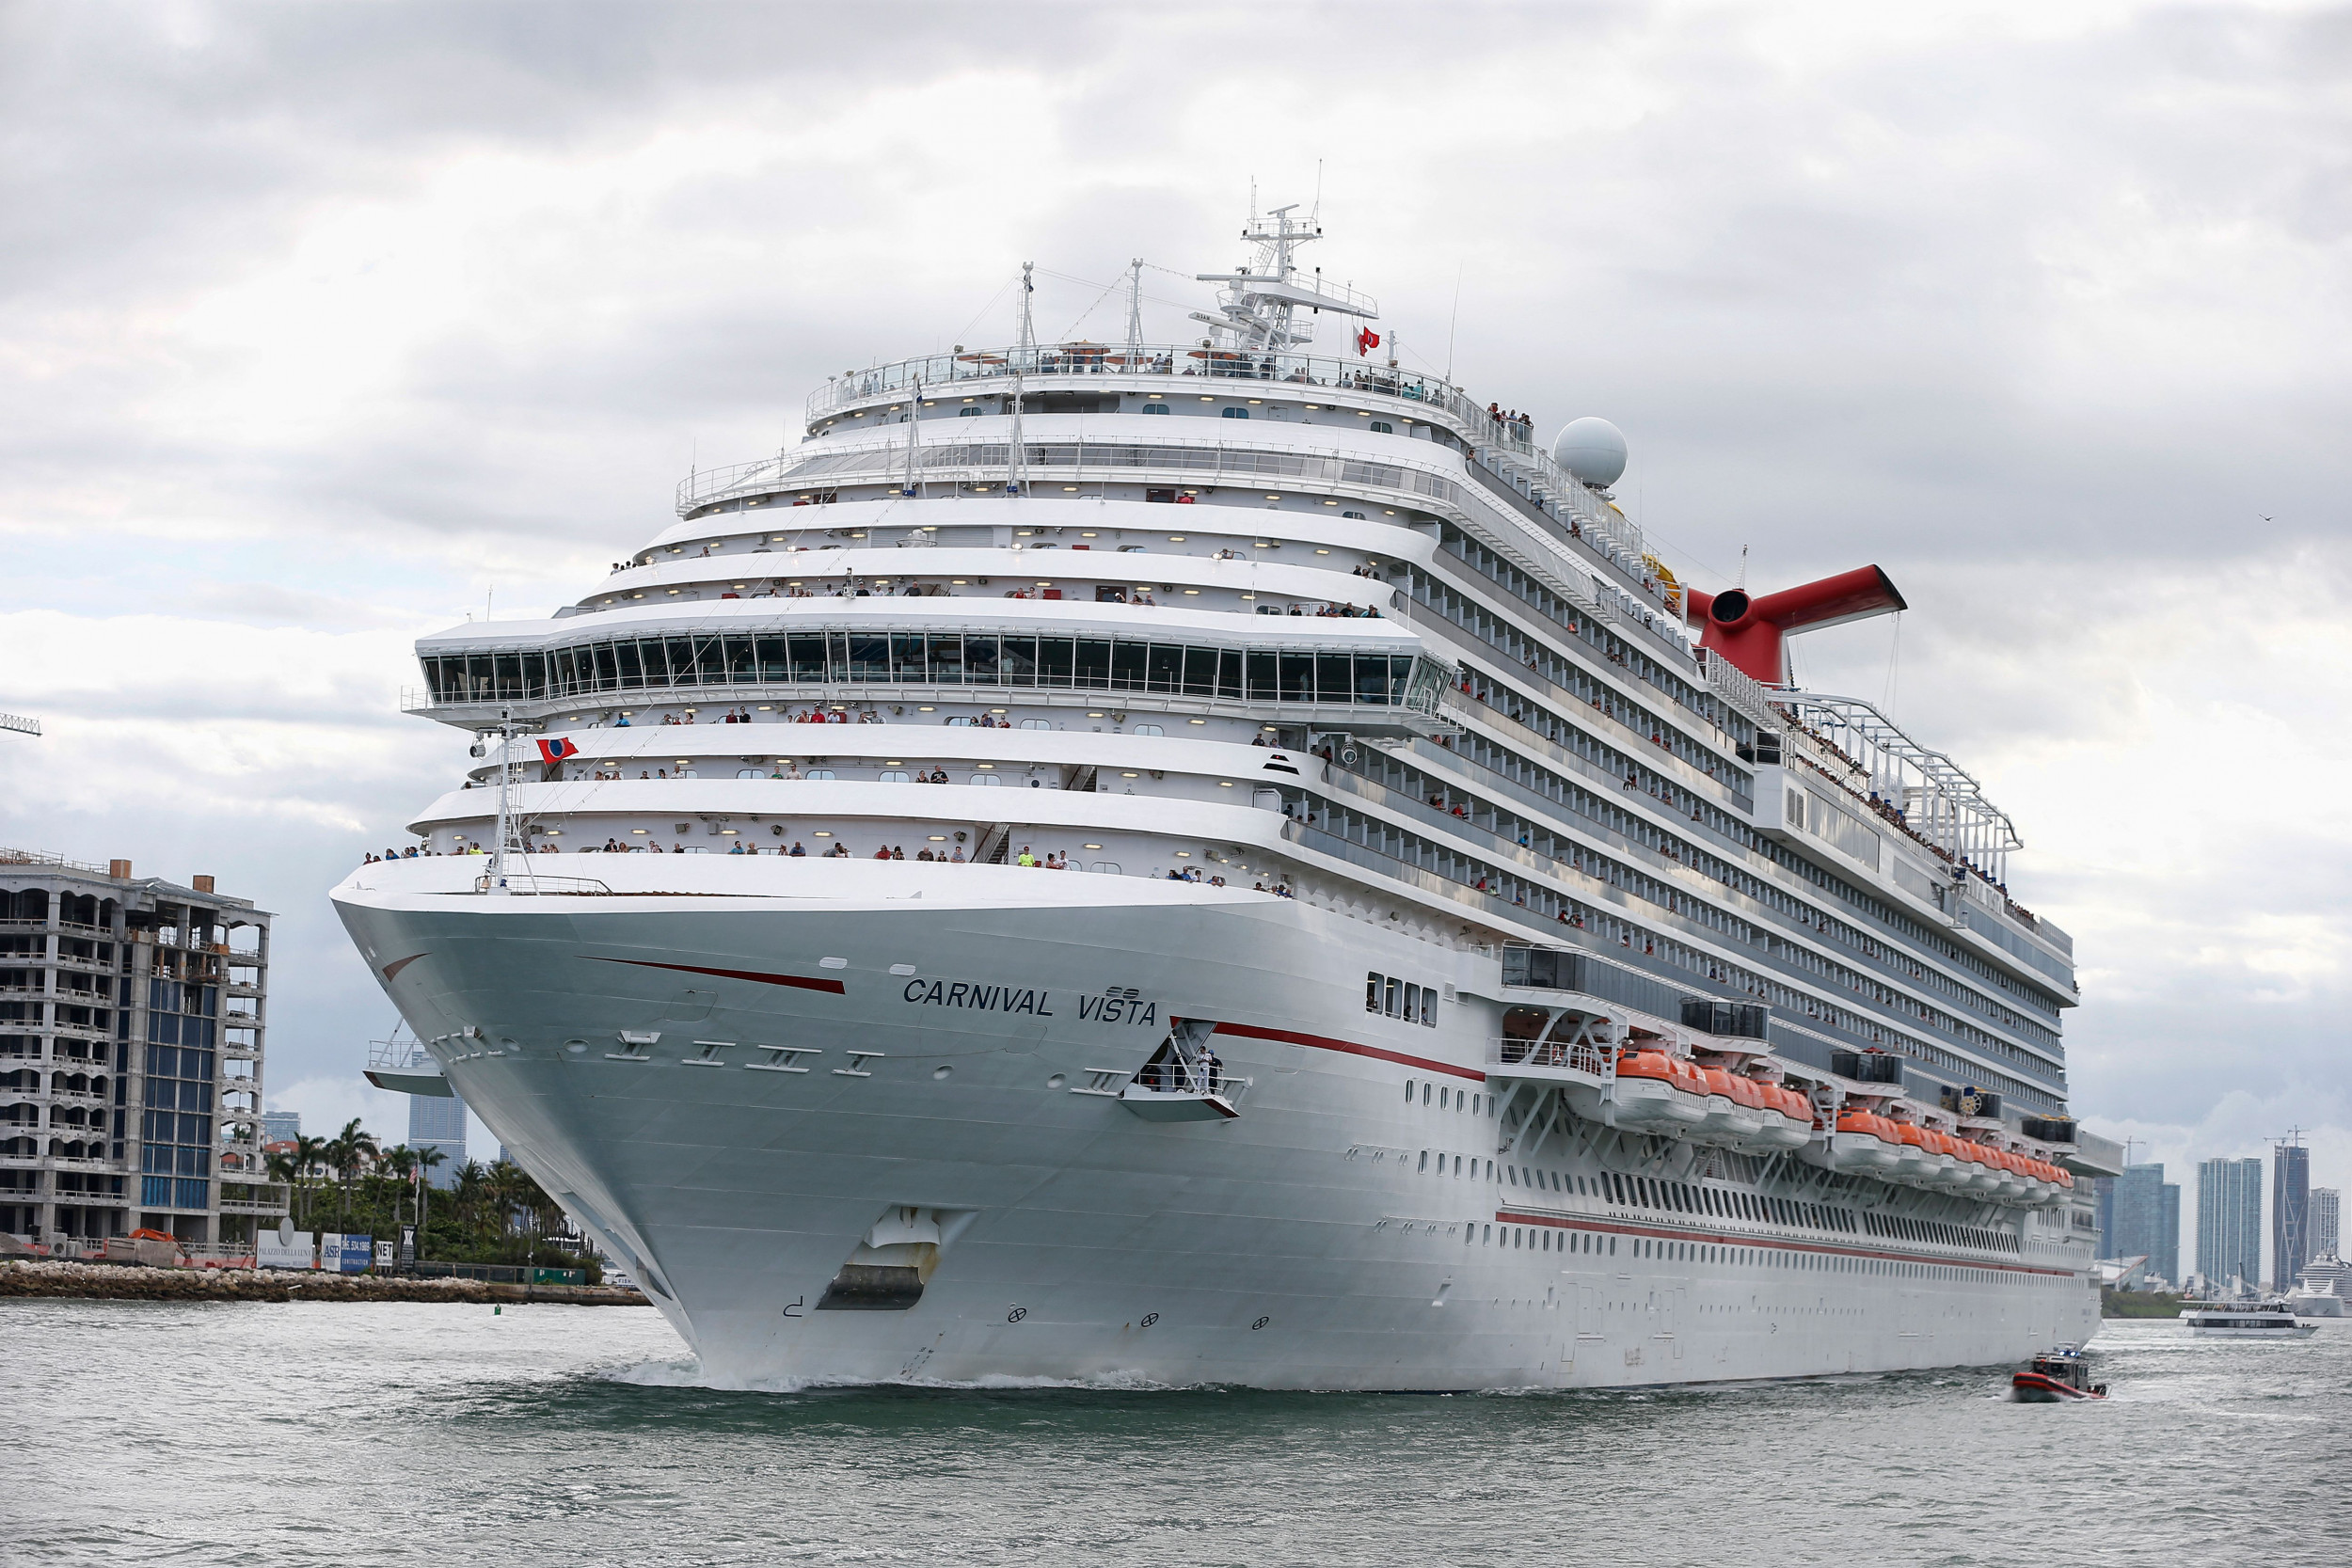 Power Cut Aboard Massive Cruise Ship Plunges Vessel Into